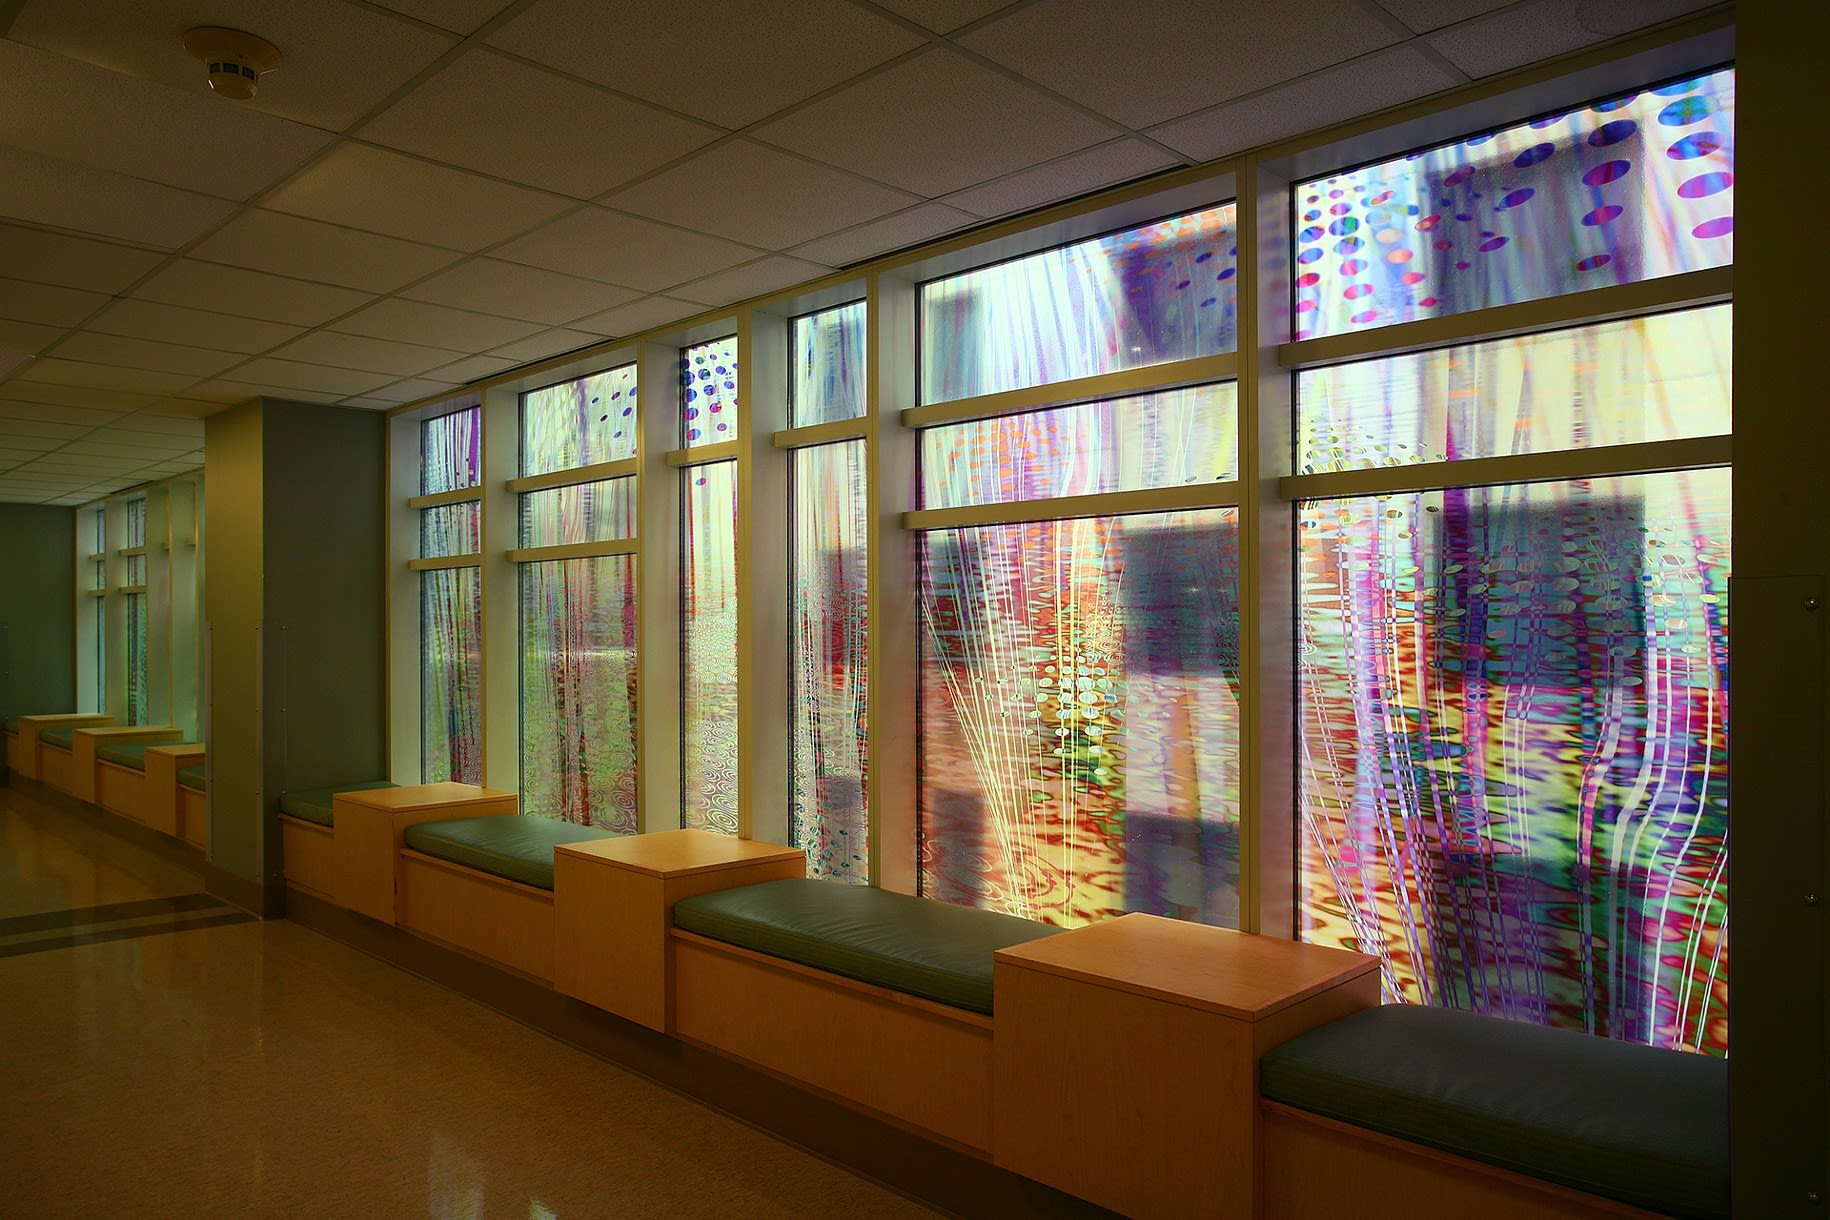 Art & Wall Decor by Kate Sweeney at Harborview Medical Center, Seattle - Winter, Summer, Fall and Spring Window